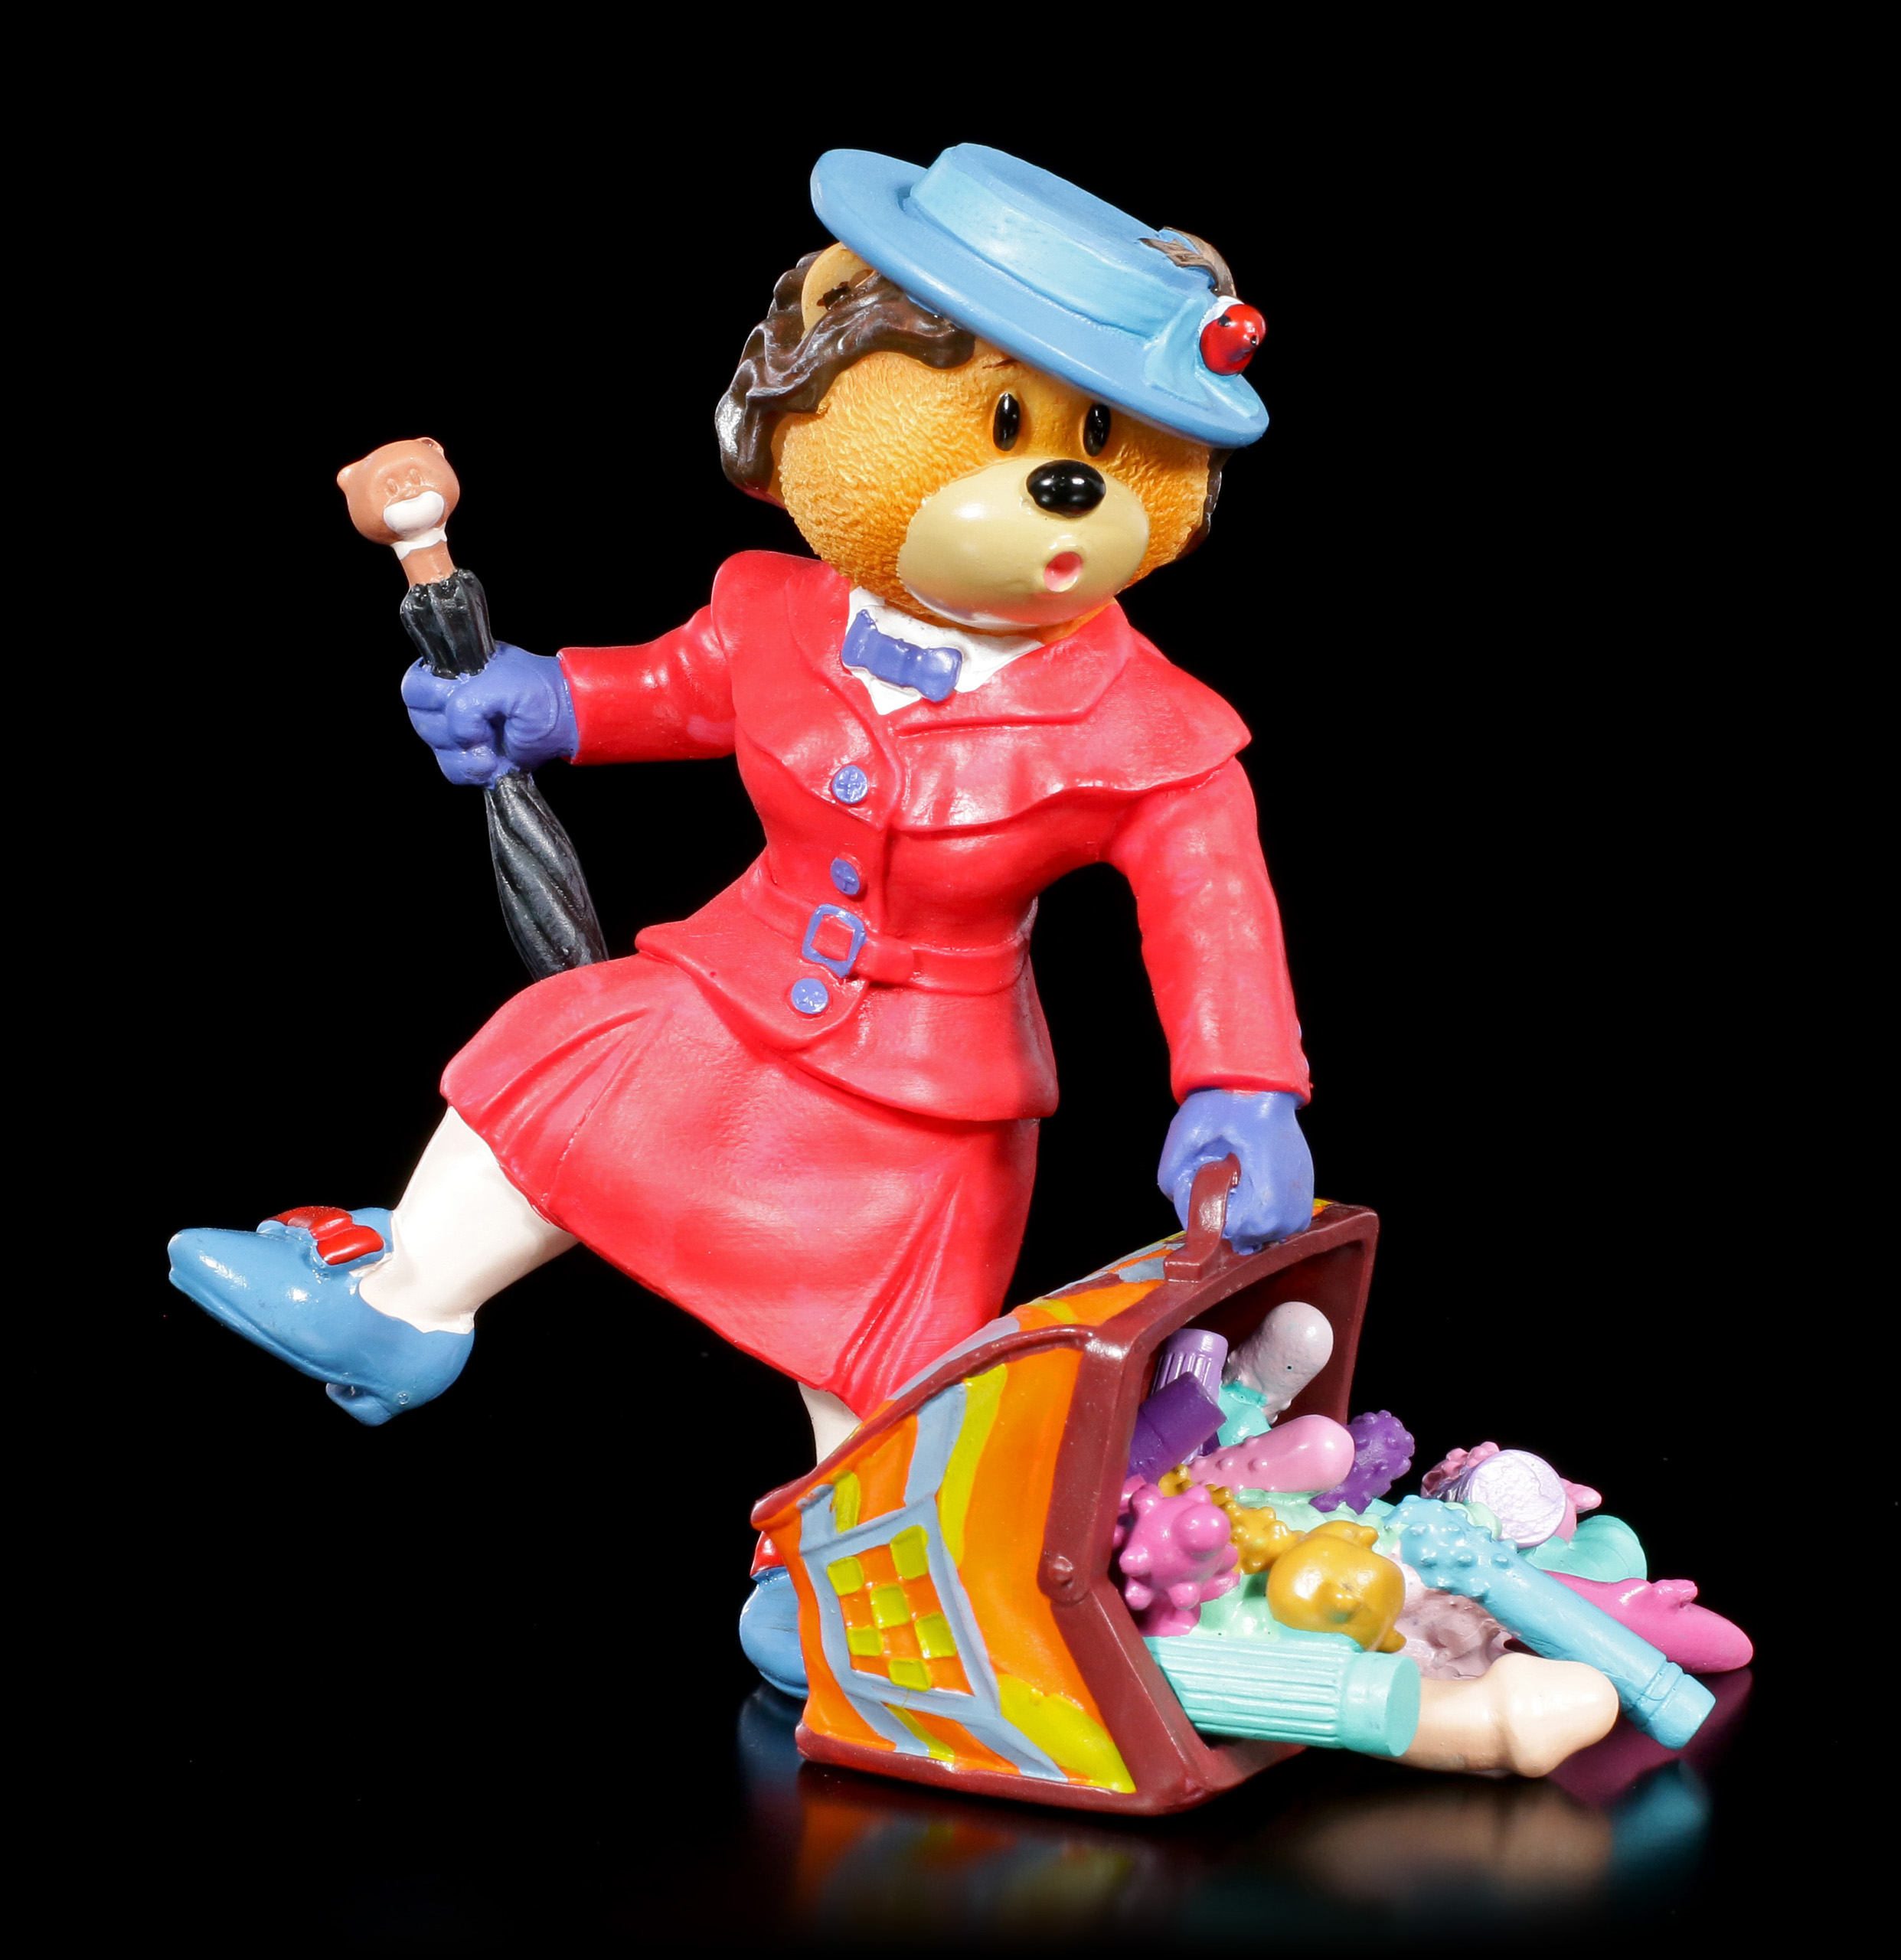 Dekofiguren Badezimmer Bad Taste Bears Figuren Online Kaufen Figuren Shop